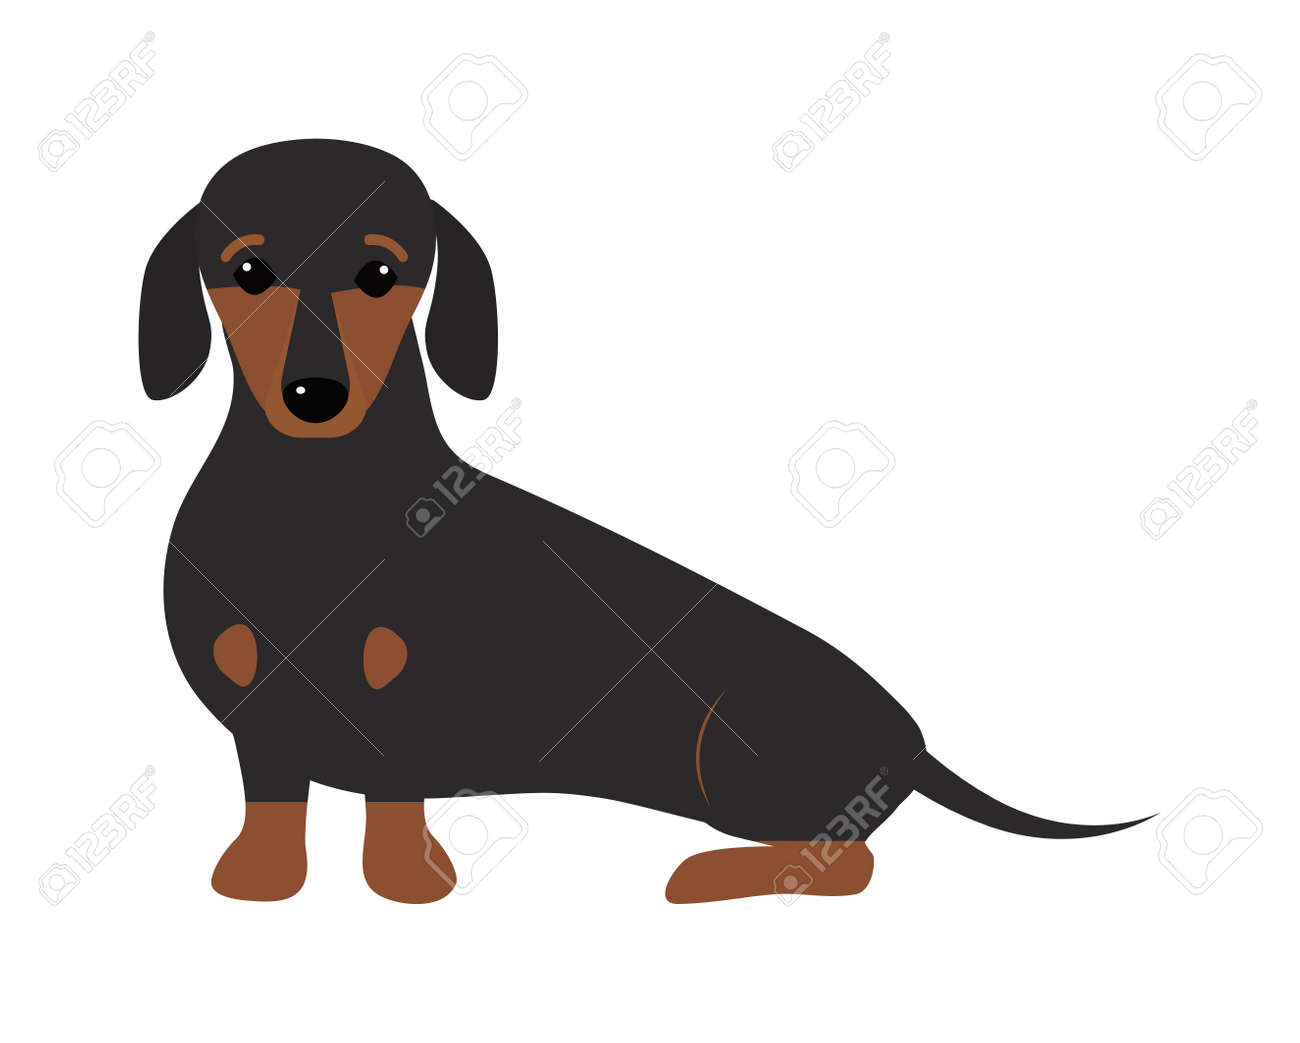 Best Cute Canine Brown Adorable Dog - 55890613-dachshund-dog-playing-purebred-breed-brown-puppy-canine-vector-cute-dachshund-dog-and-little-dachshu  Graphic_364298  .jpg